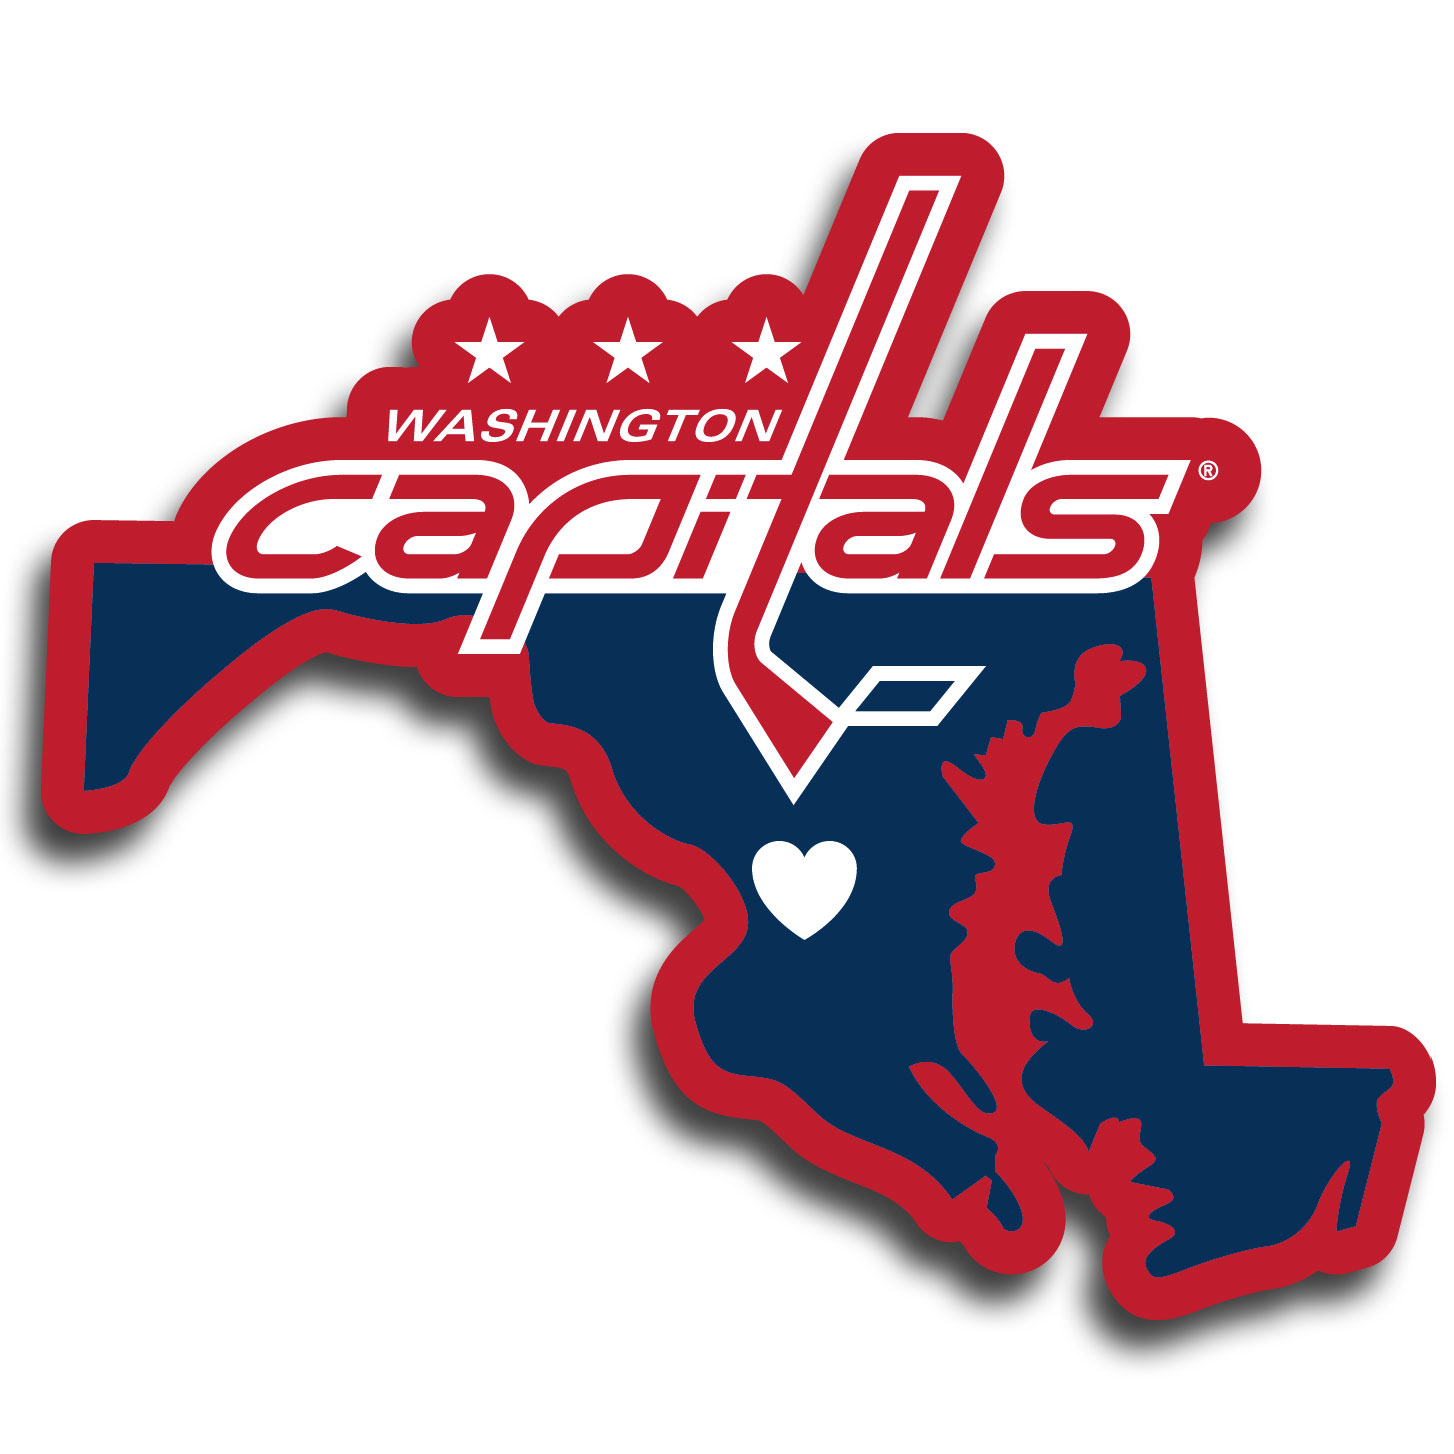 Washington Capitals® Home State Decal - It's a home state decal with a sporty twist! This Washington Capitals® decal feature the team logo over a silhouette of the state in team colors and a heart marking the home of the team. The decal is approximately 5 inches on repositionable vinyl.